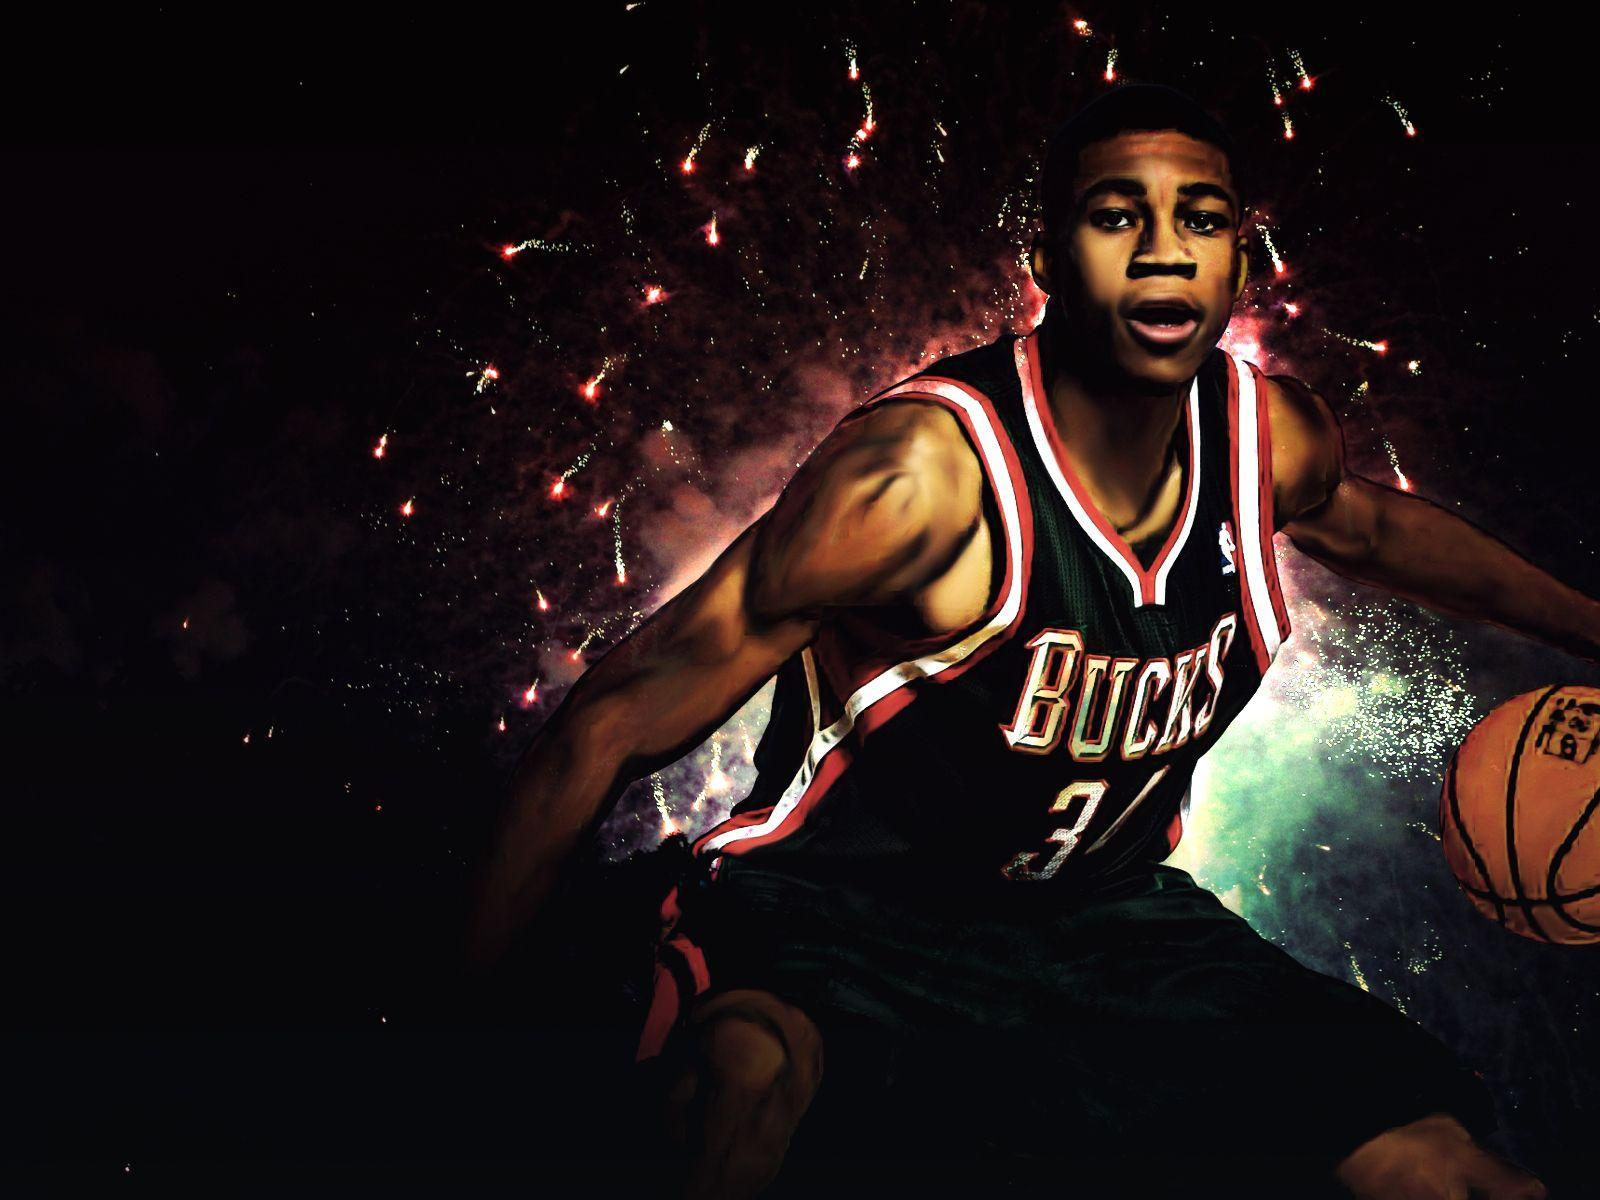 Antetokounmpo Highlights!! (Will grow to 7 feet) - Page 10 - RealGM